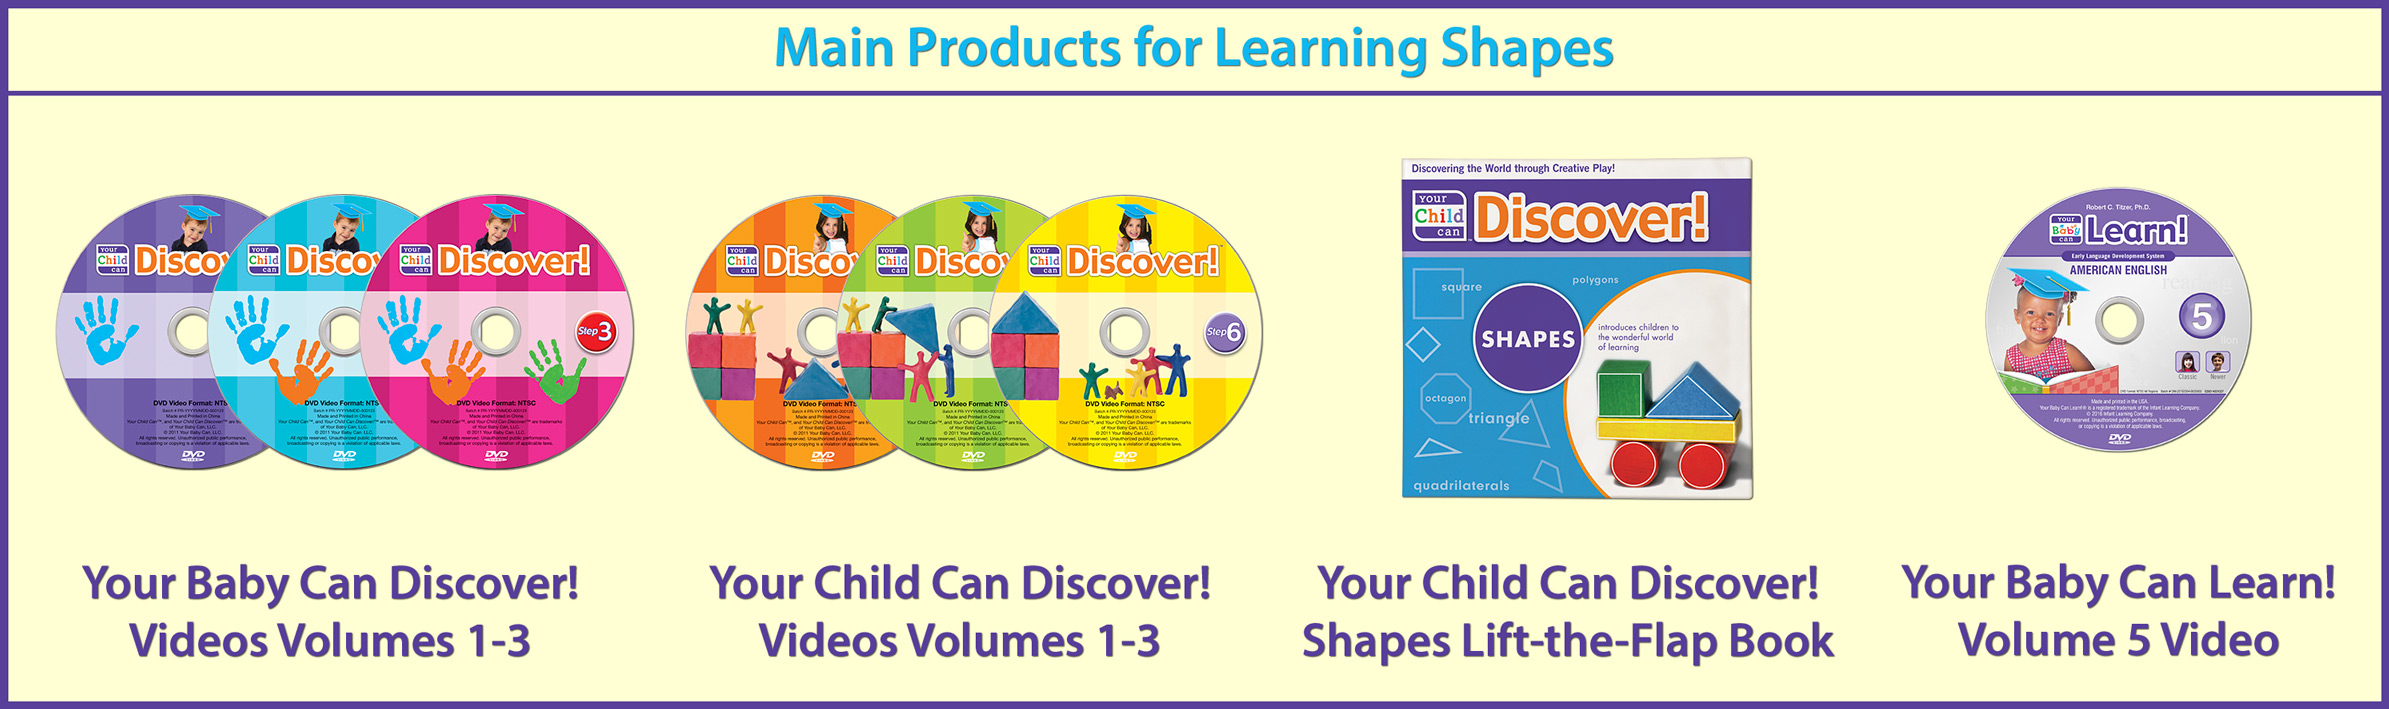 Main Products for Learning Shapes